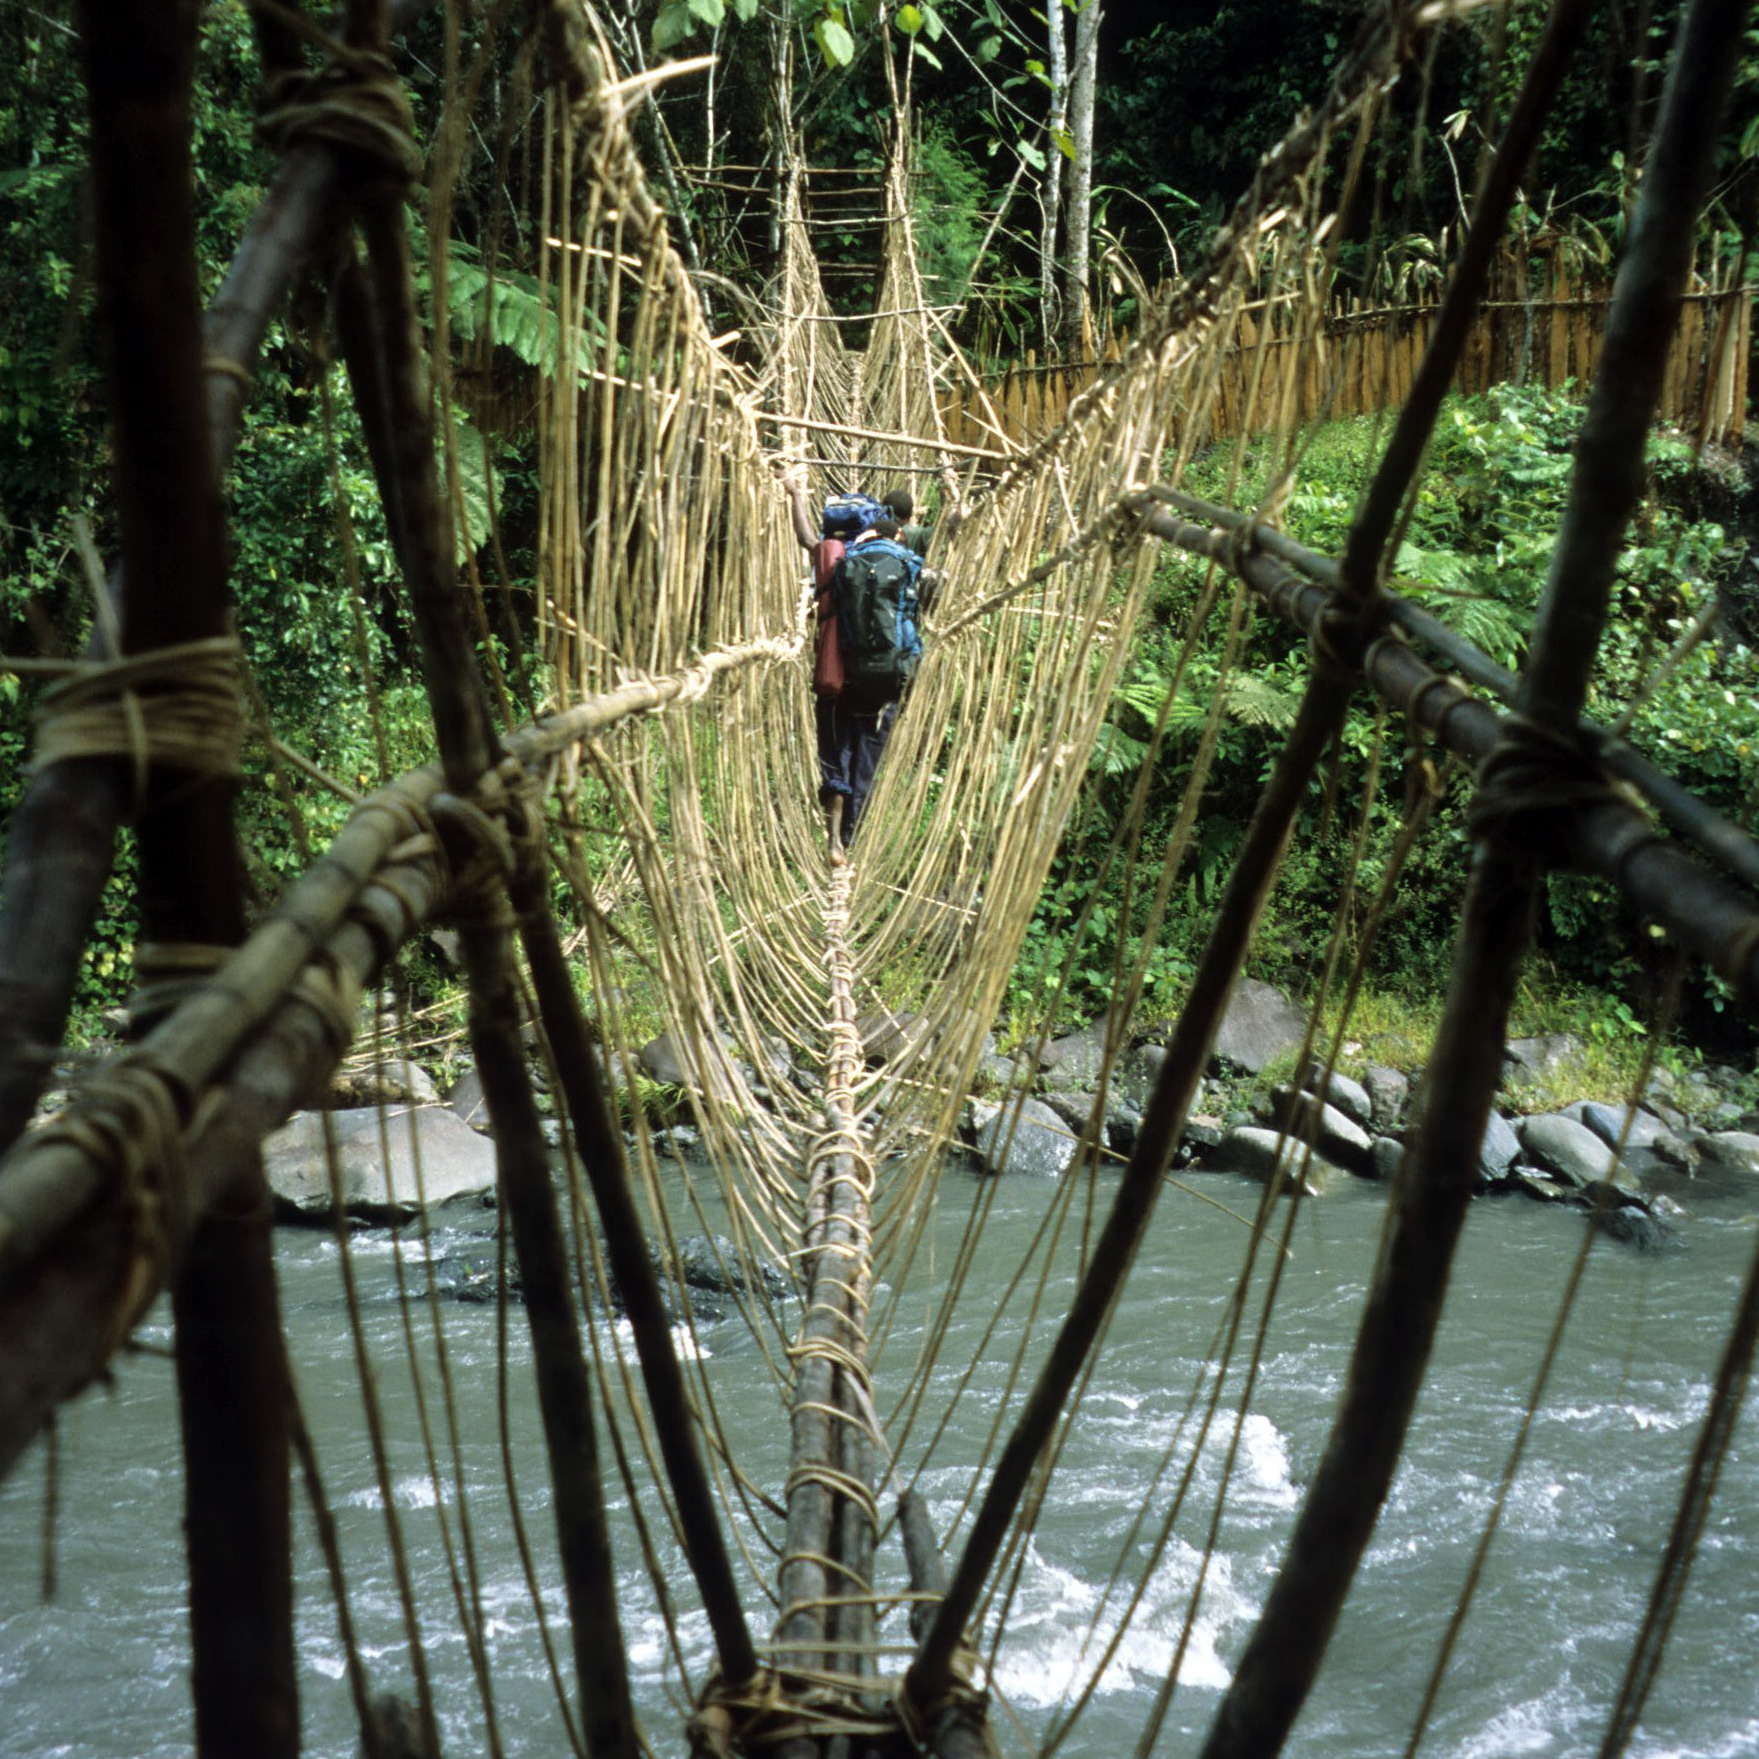 Rope Bridge, New Guinea Art, Oceanic Art, South Pacific Art, Tribal Art